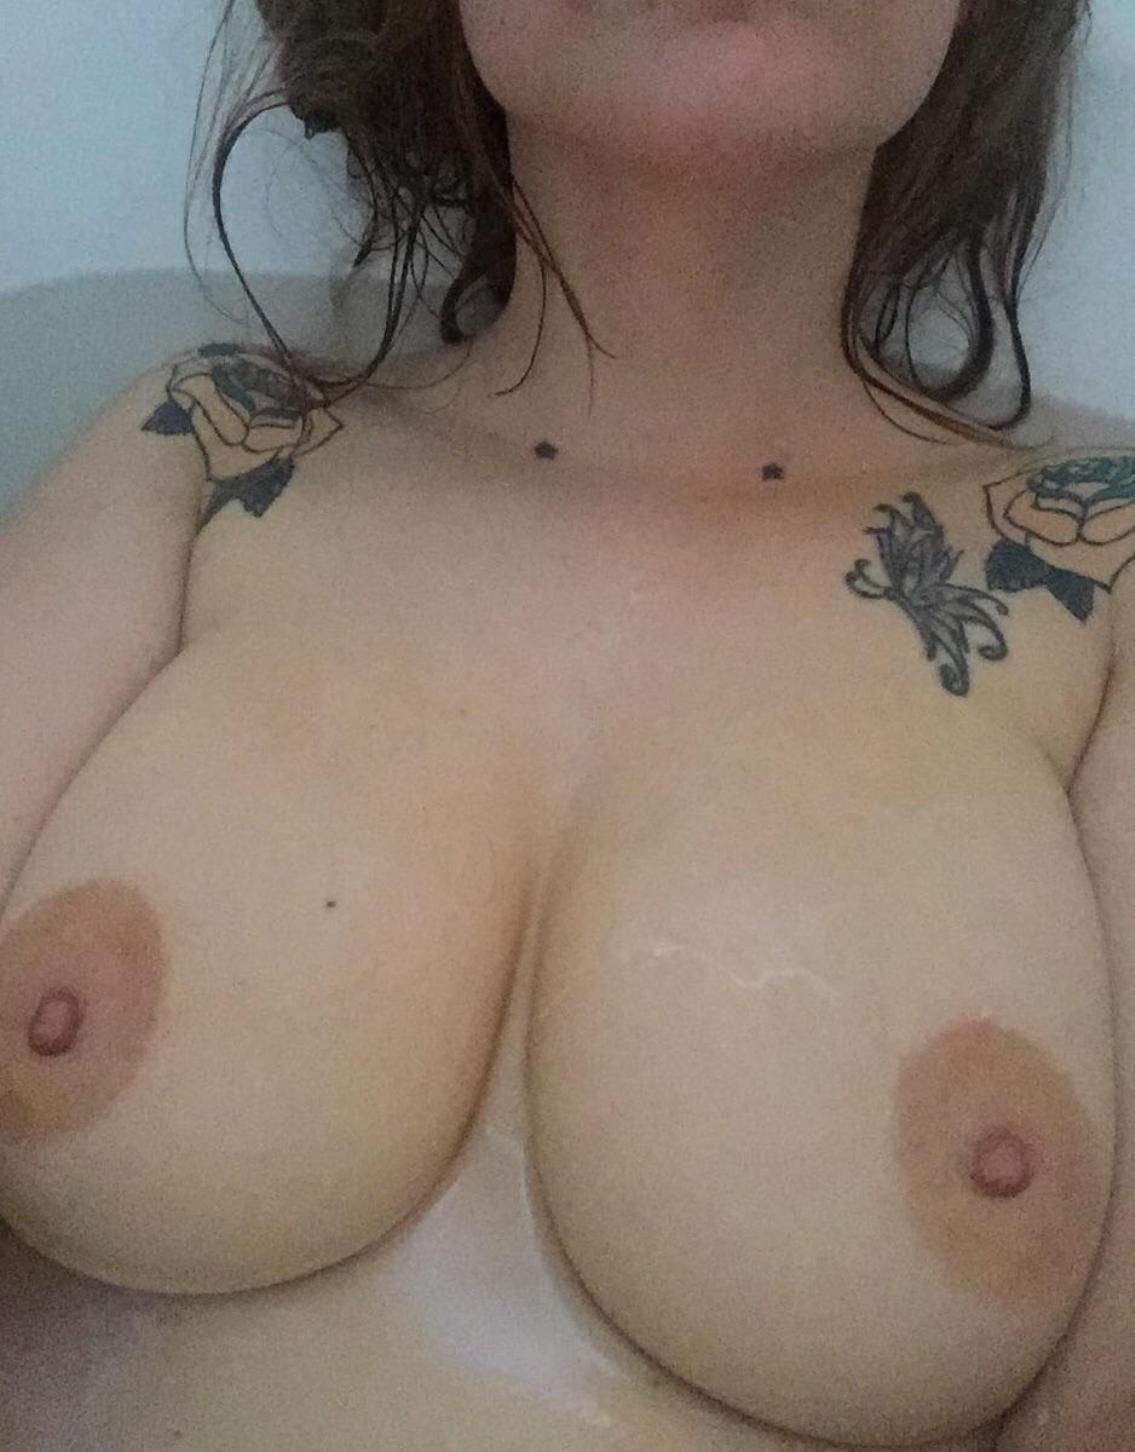 Sexy female displays perfect breasts in a bathtub